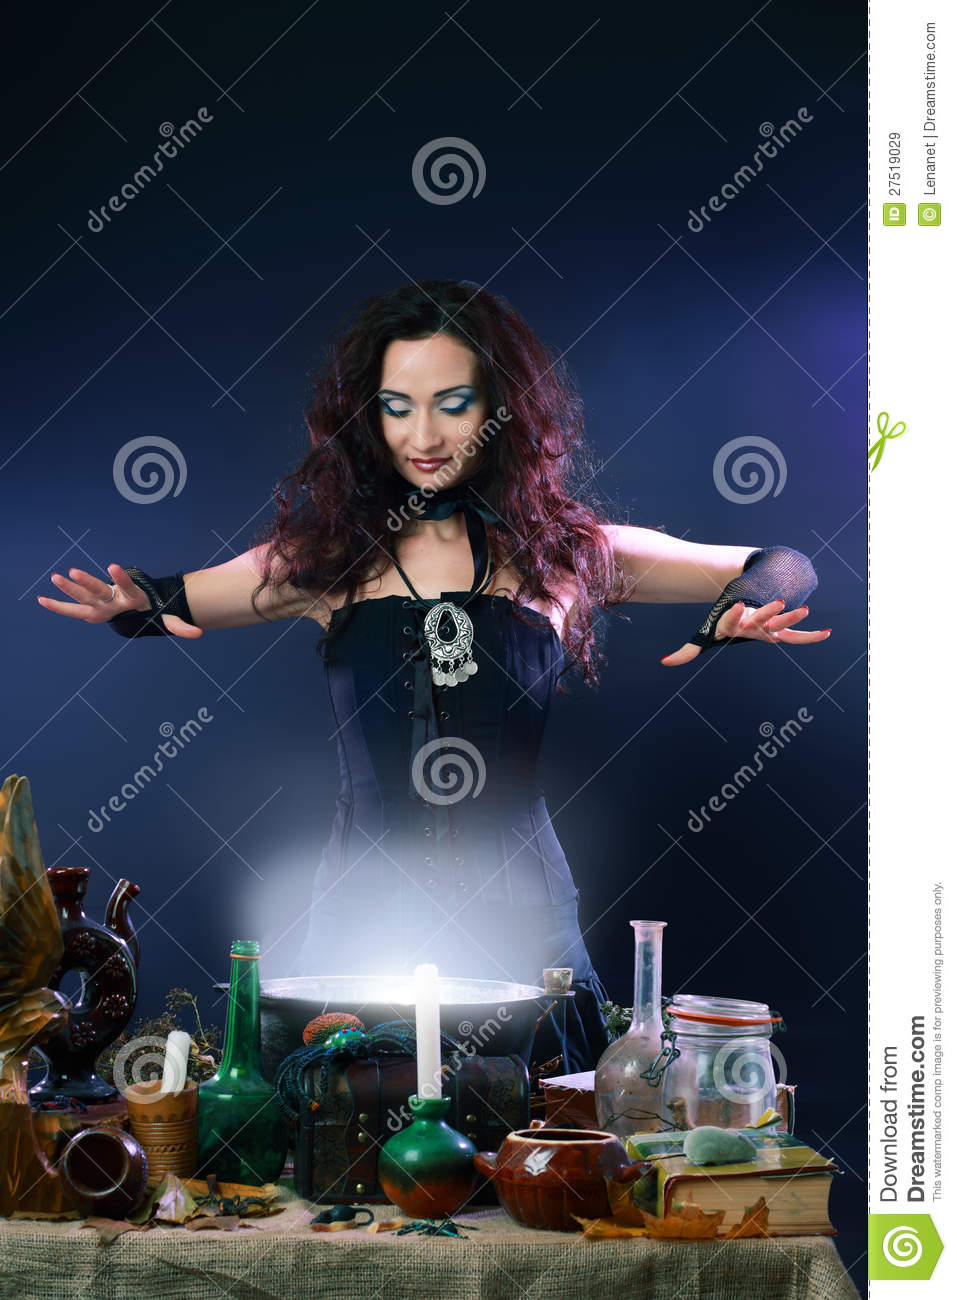 Witch Making Potion Royalty Free Stock Images - Image: 27519029